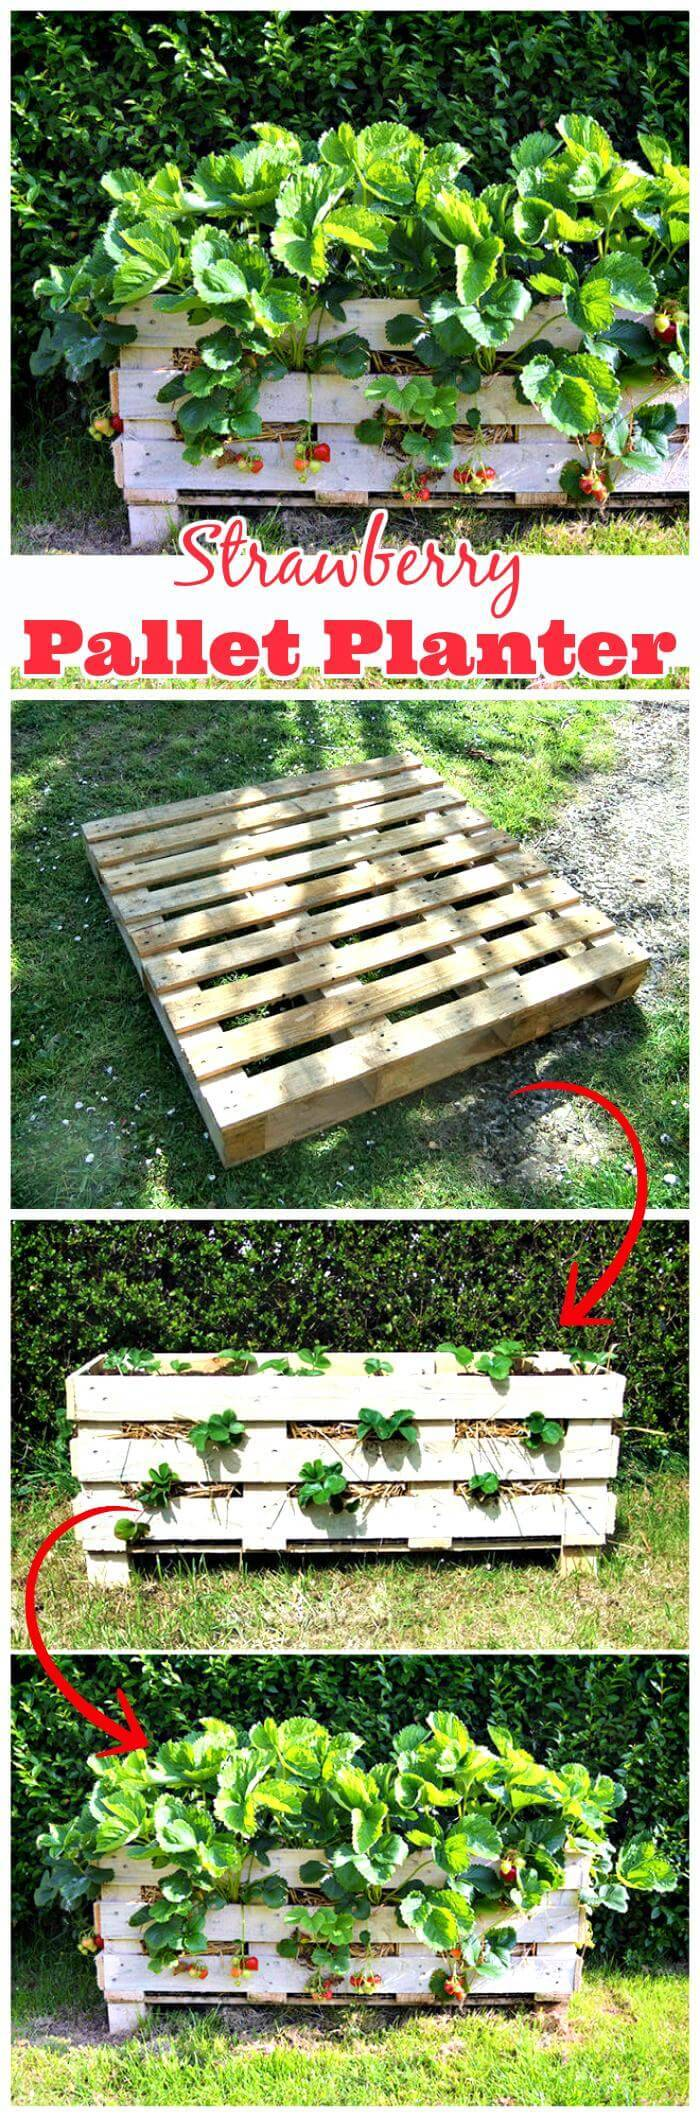 Wooden Strawberry Pallet Planter